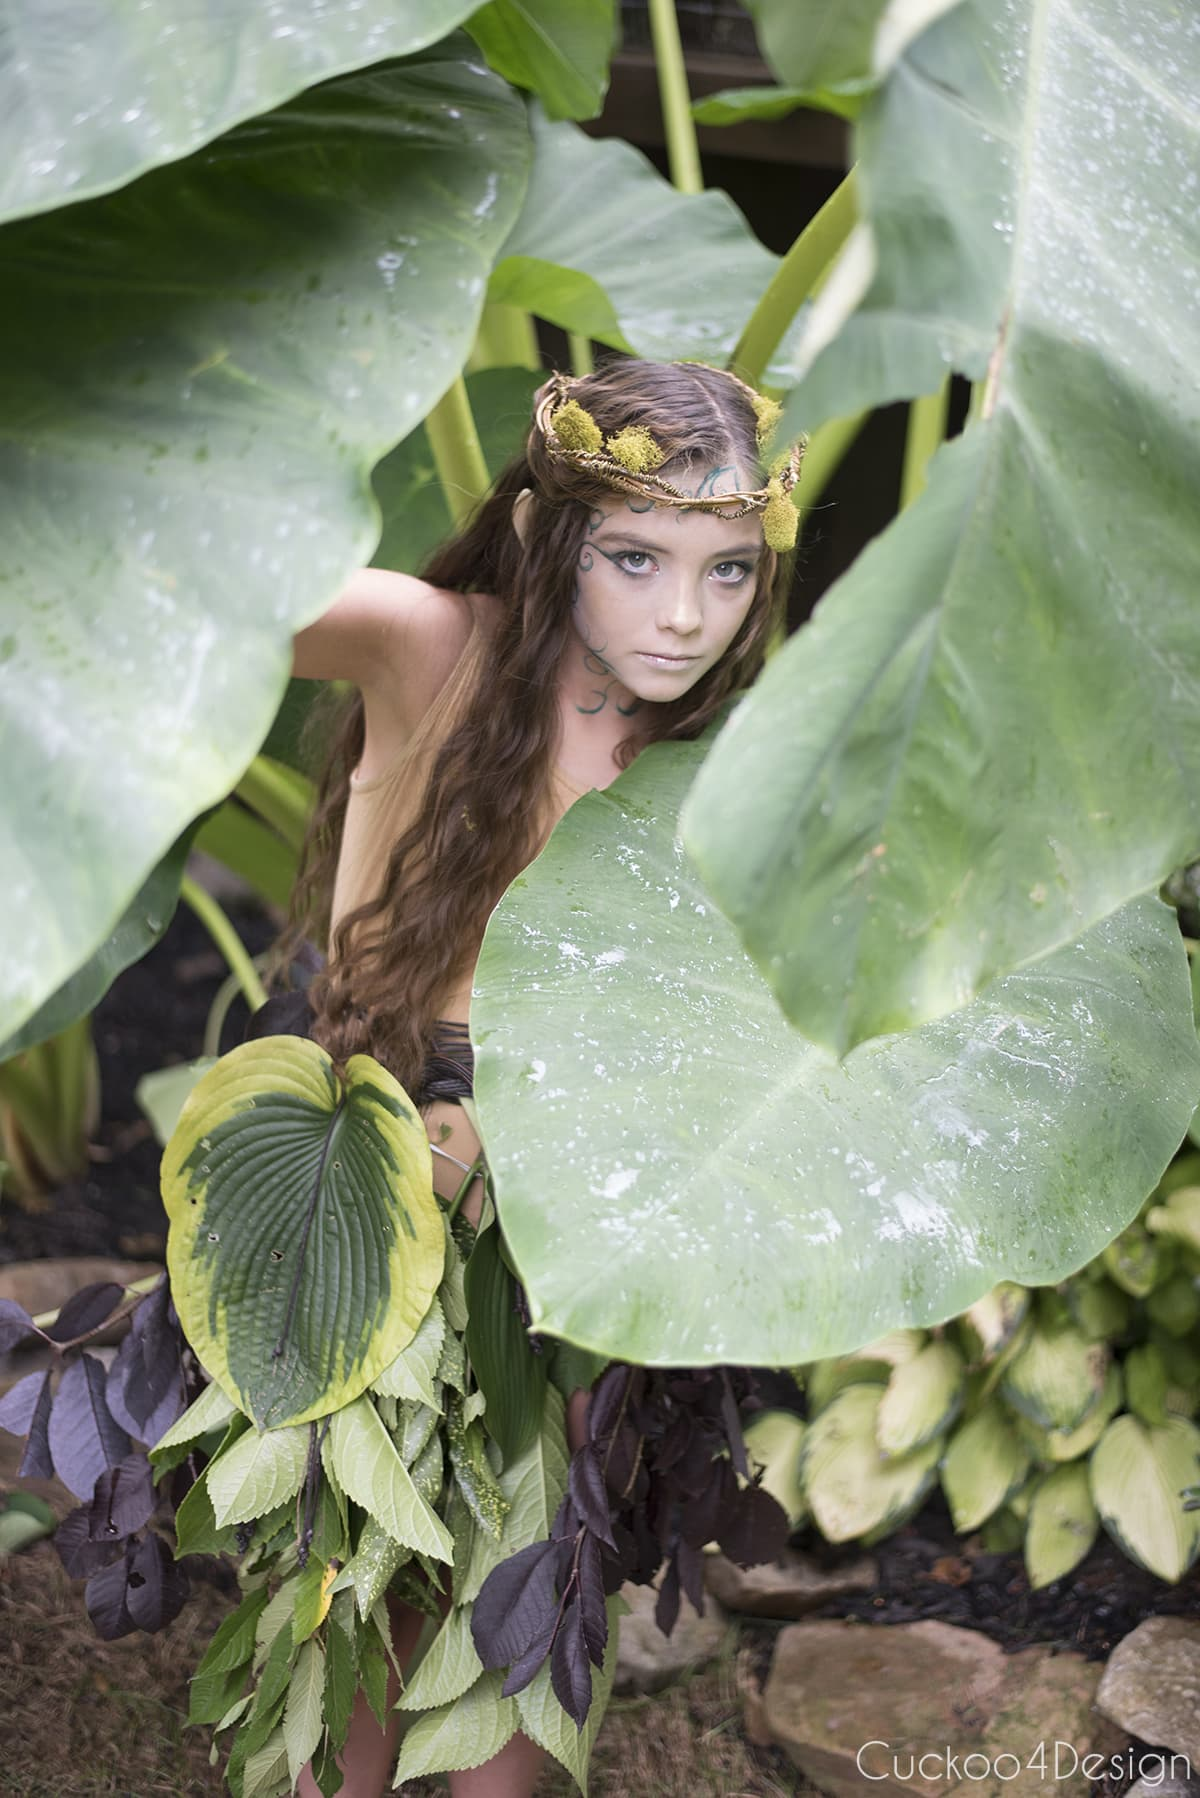 tiny forest elf hiding under big leaves